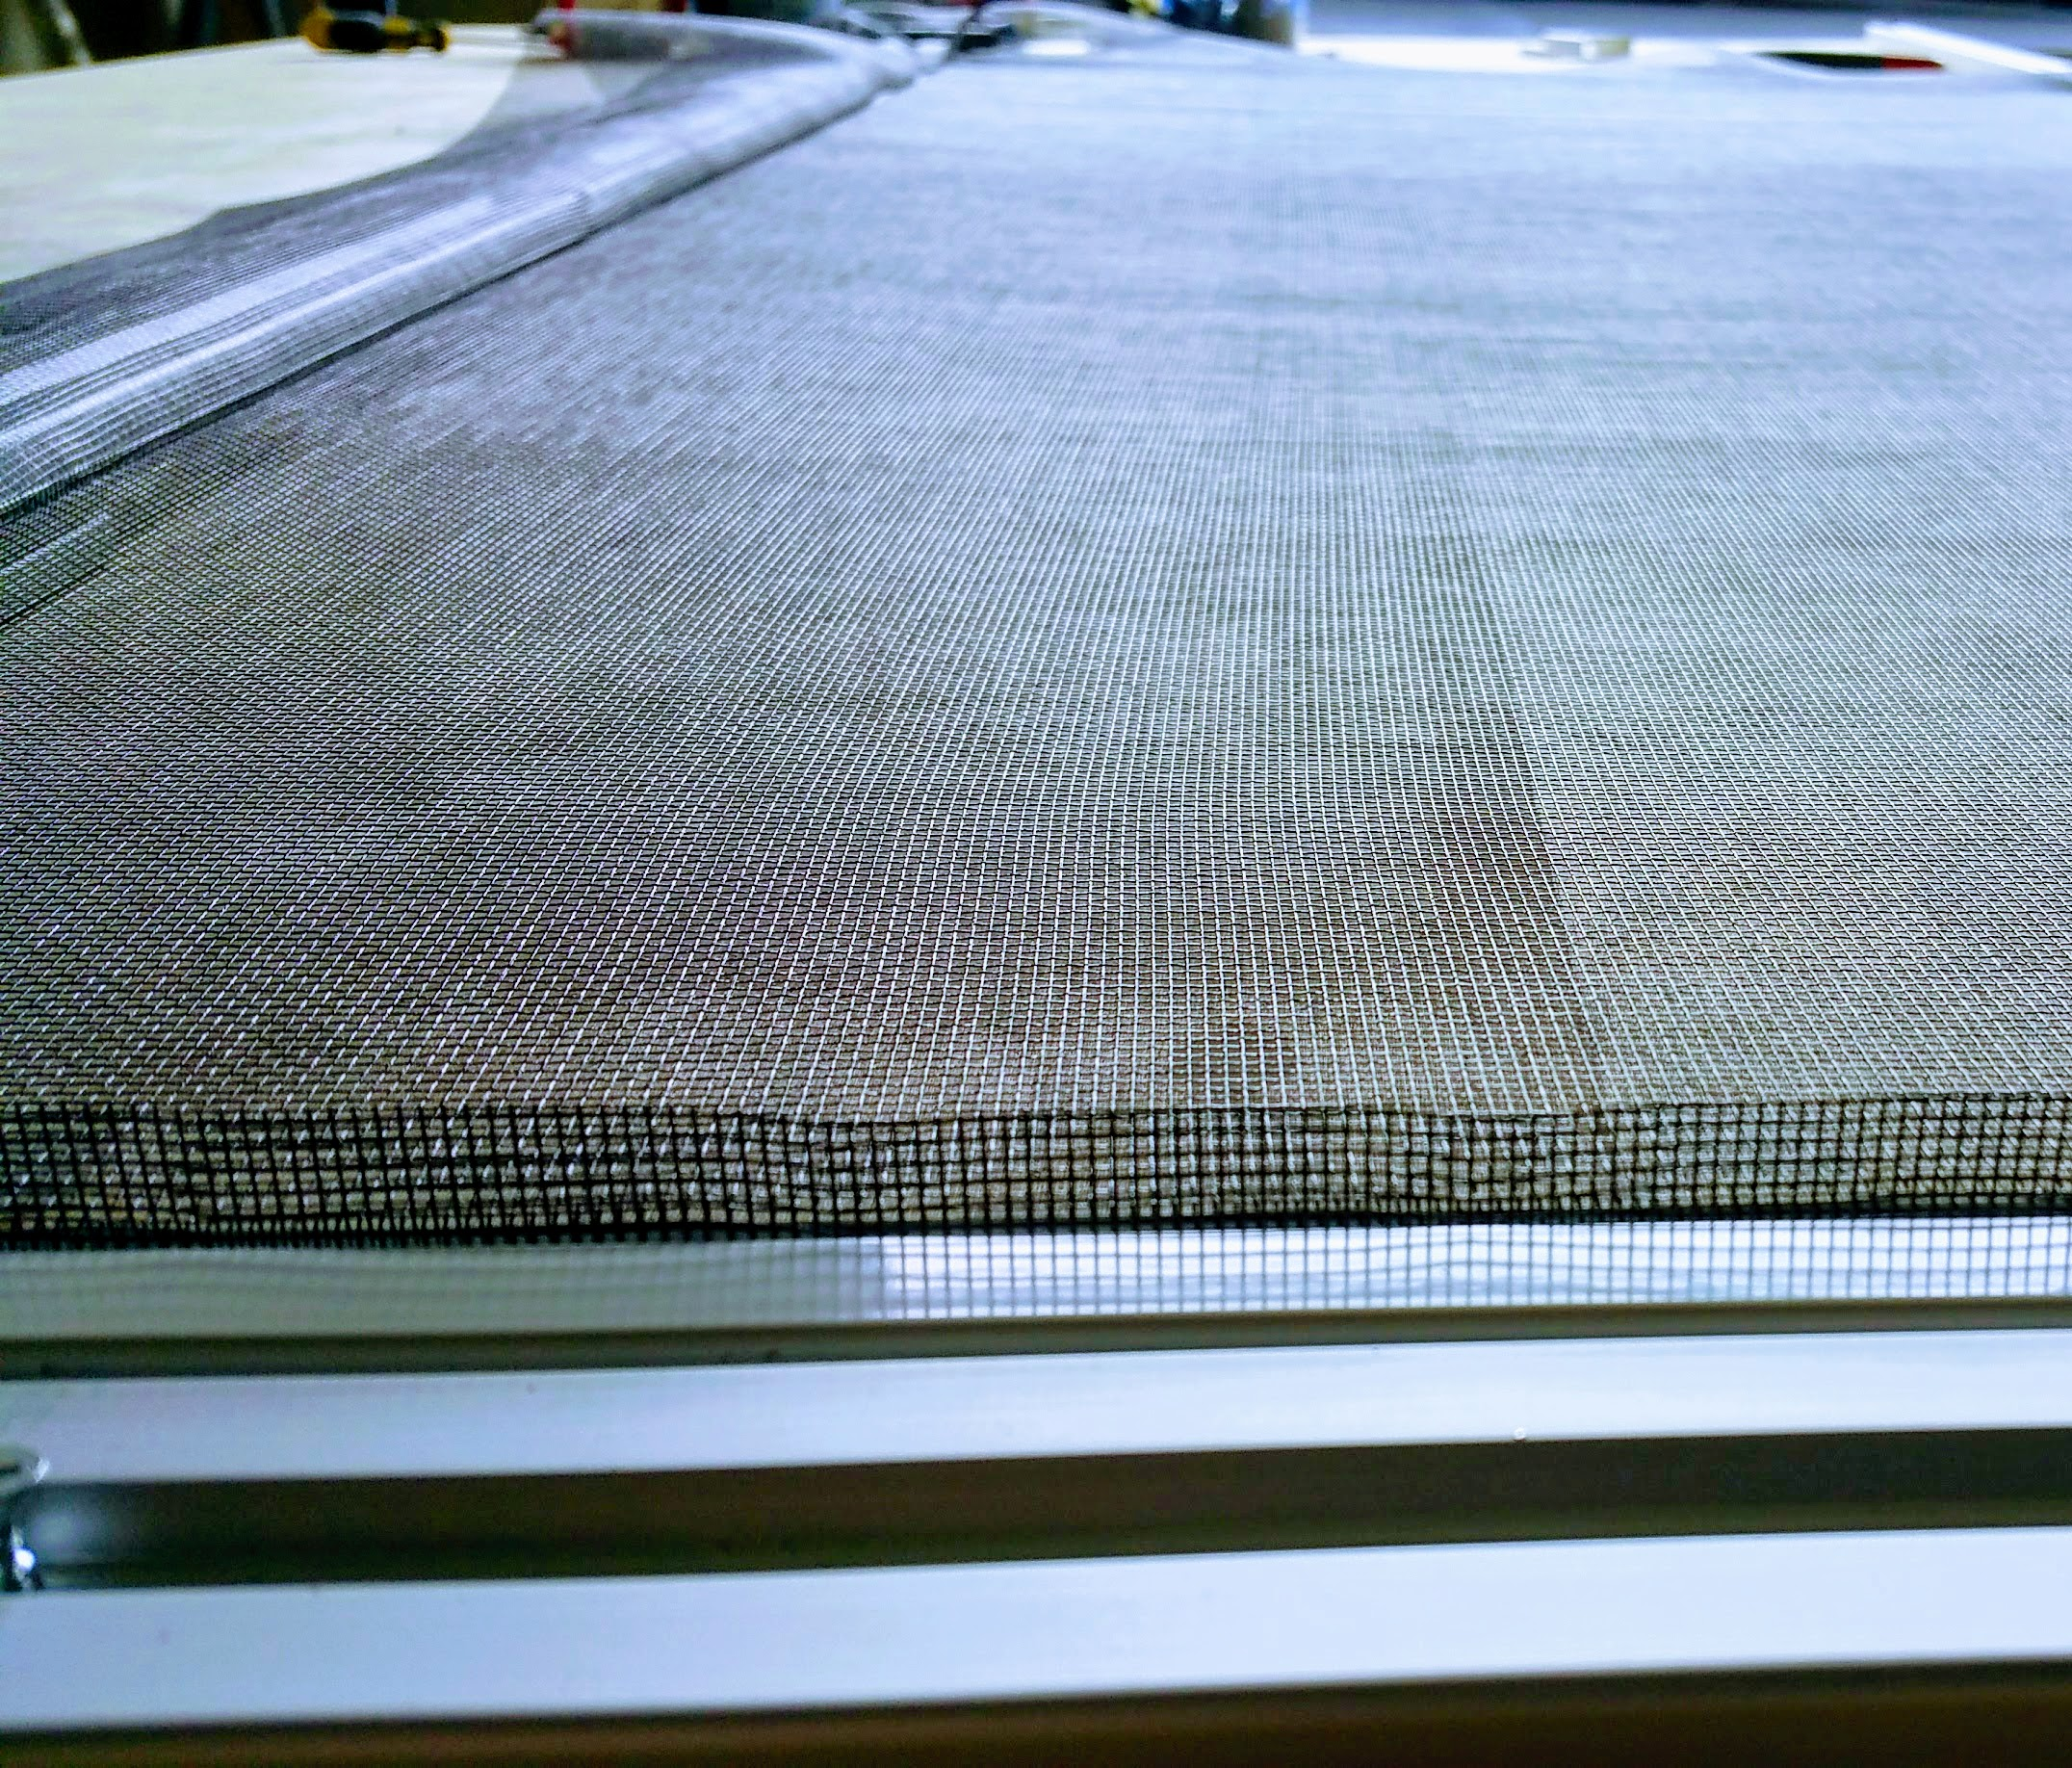 Home replacement window screens portland for Home window screen repair